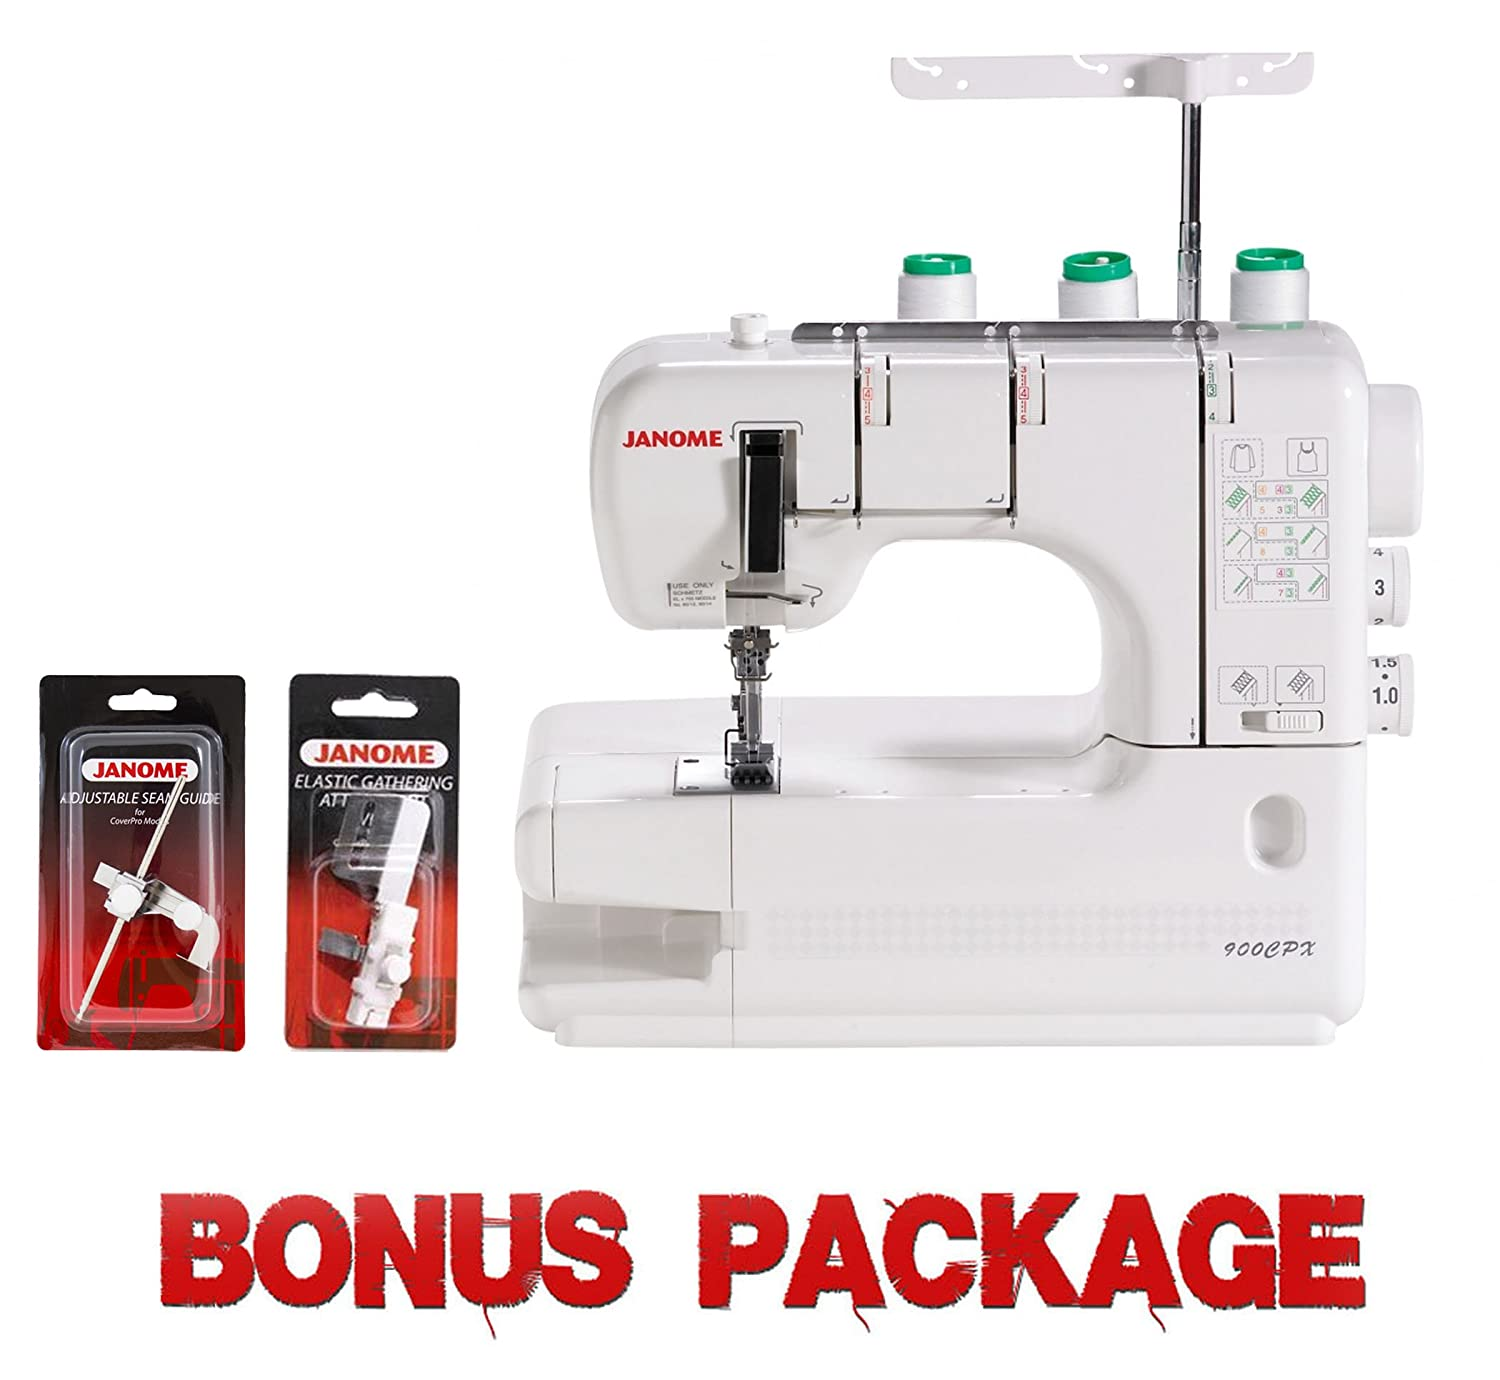 Janome CoverPro 900CPX Portable CoverHem Serger Machine With Bonus Cutex Sewing Supplies